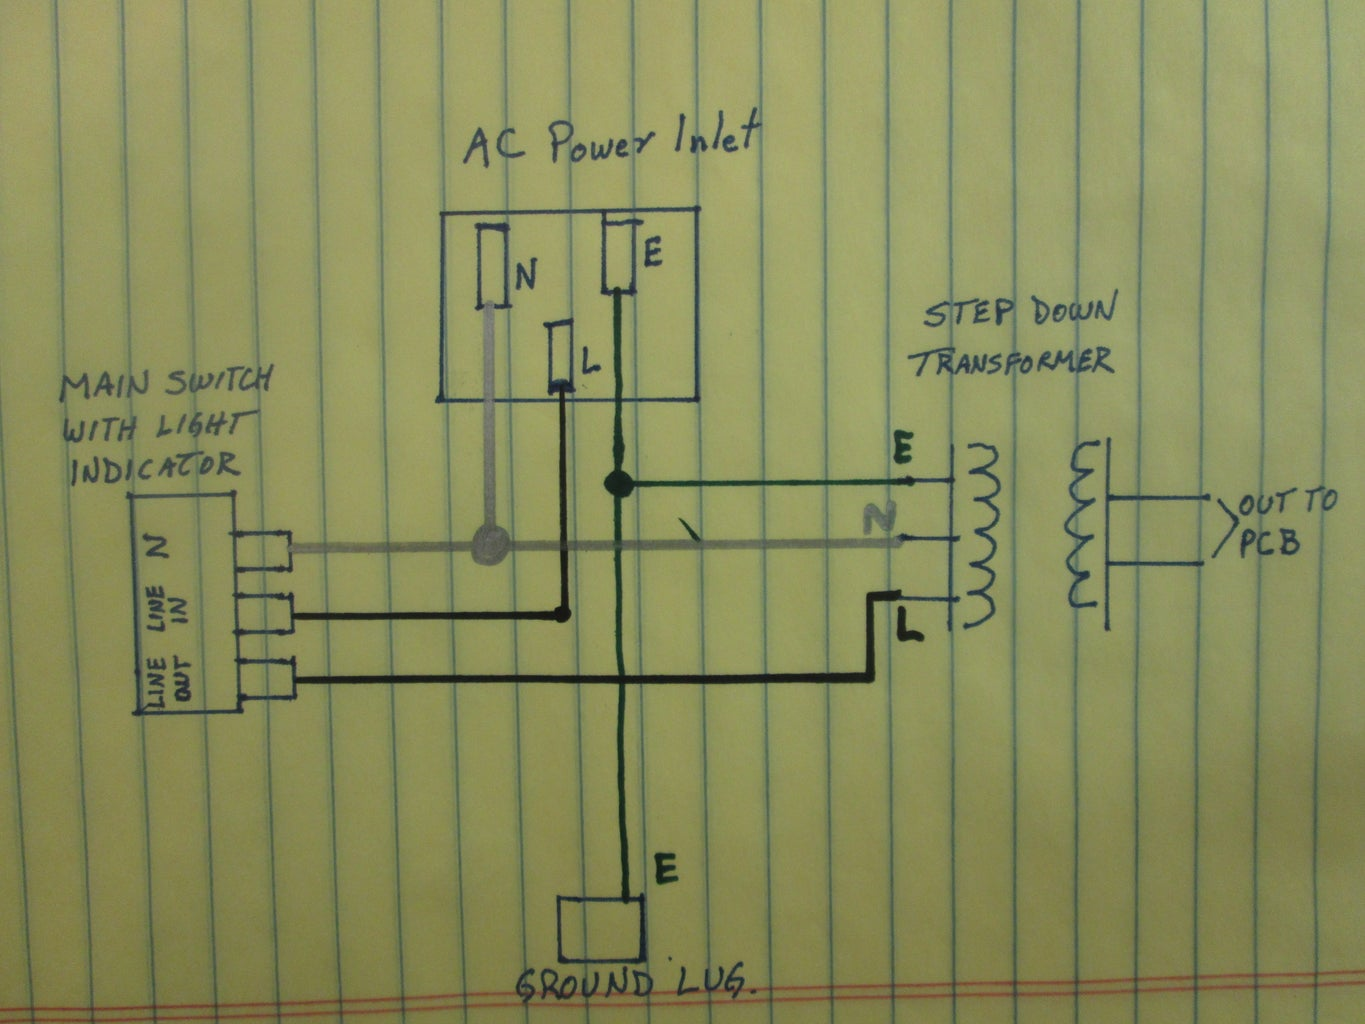 Main Switch, A/C Power Inlet and Transformer Wiring.